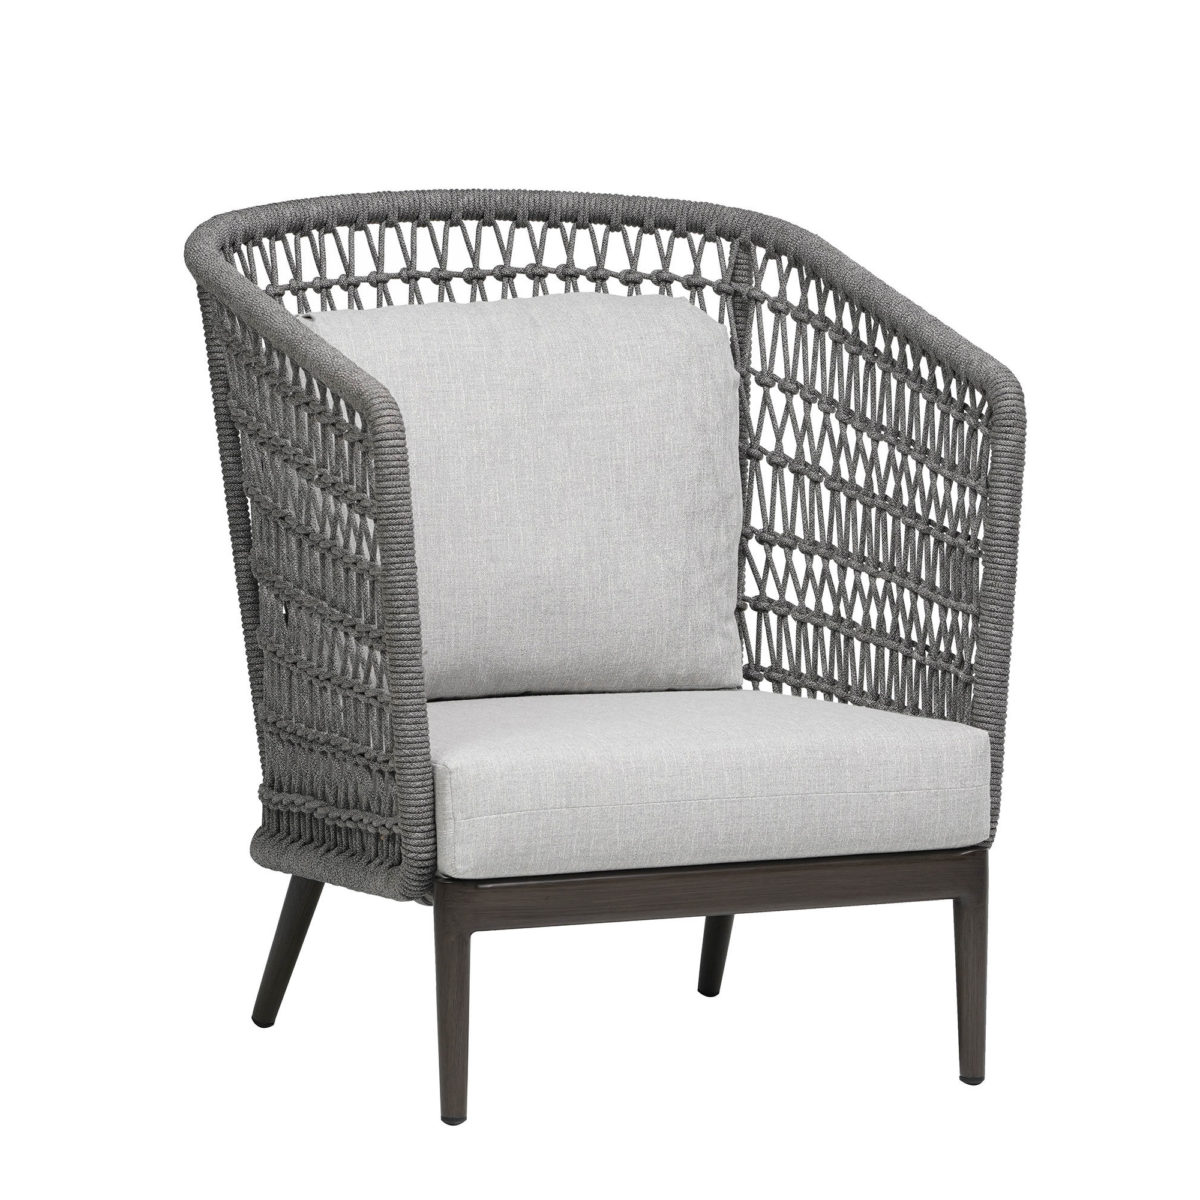 The Poinciana high back chair, featuring grey rope backing and light grey cushions.